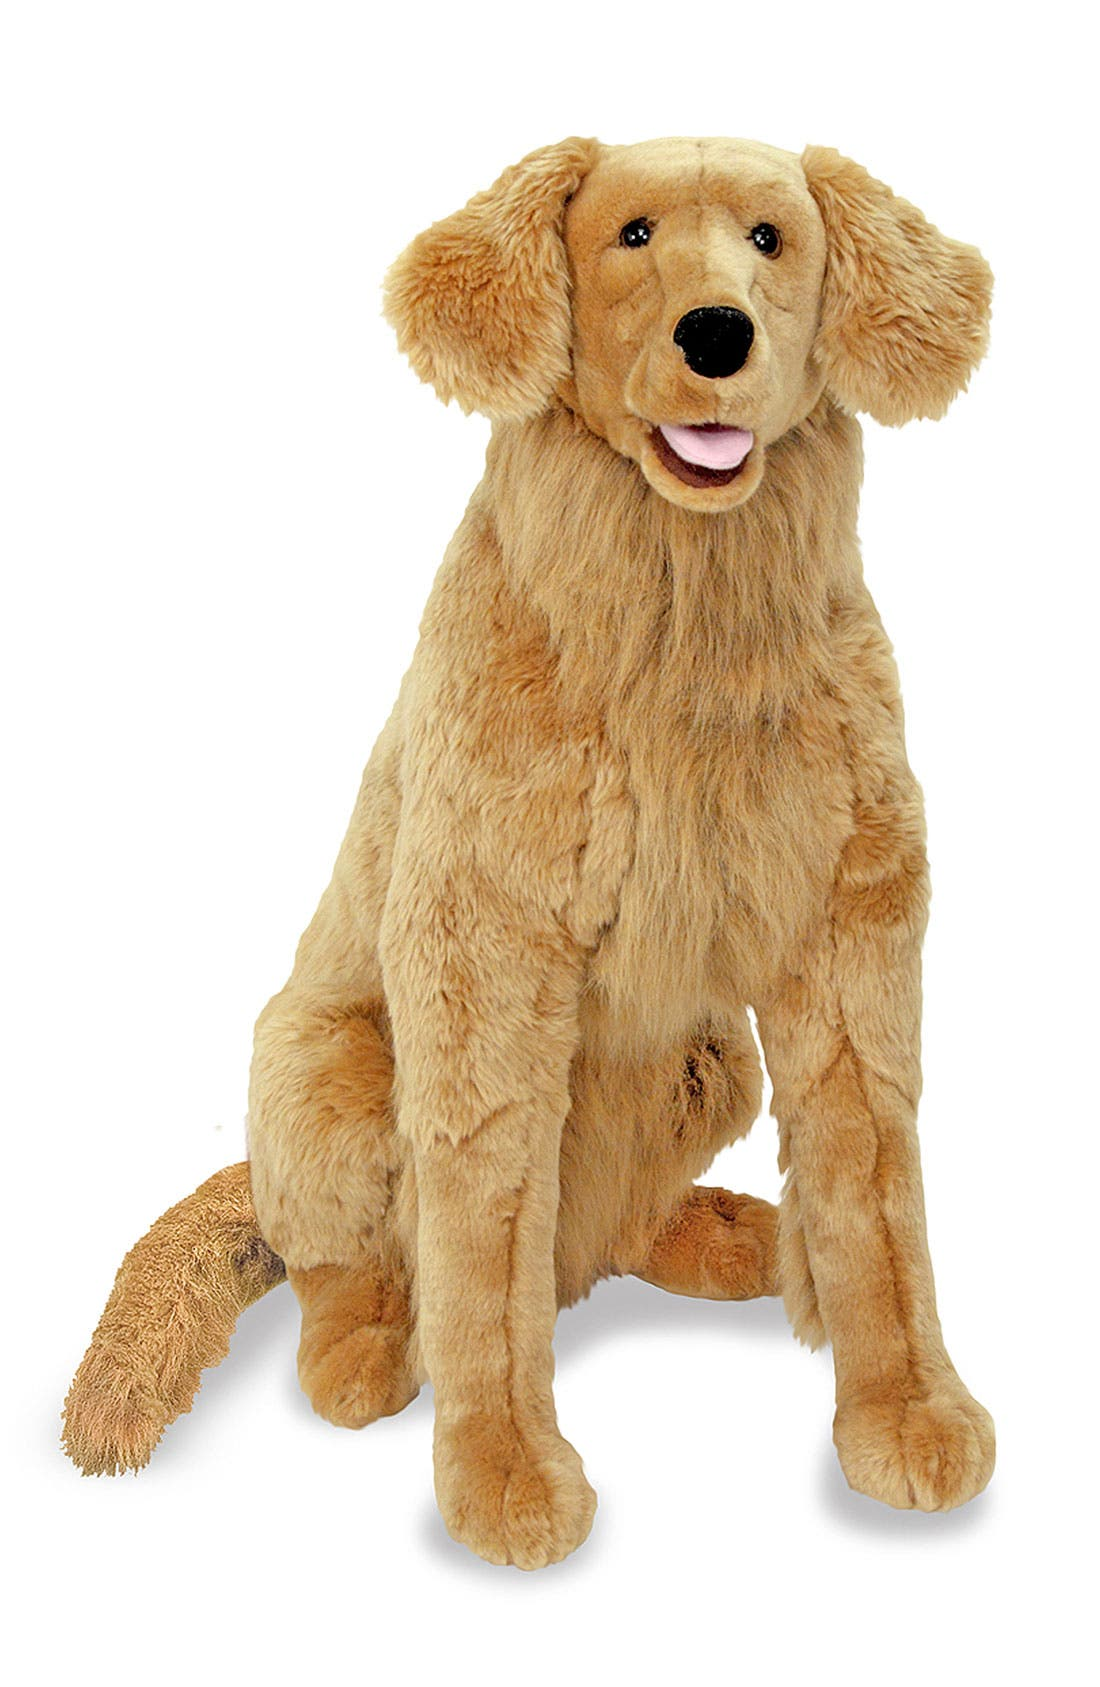 Alternate Image 1 Selected - Melissa & Doug Oversized Golden Retriever